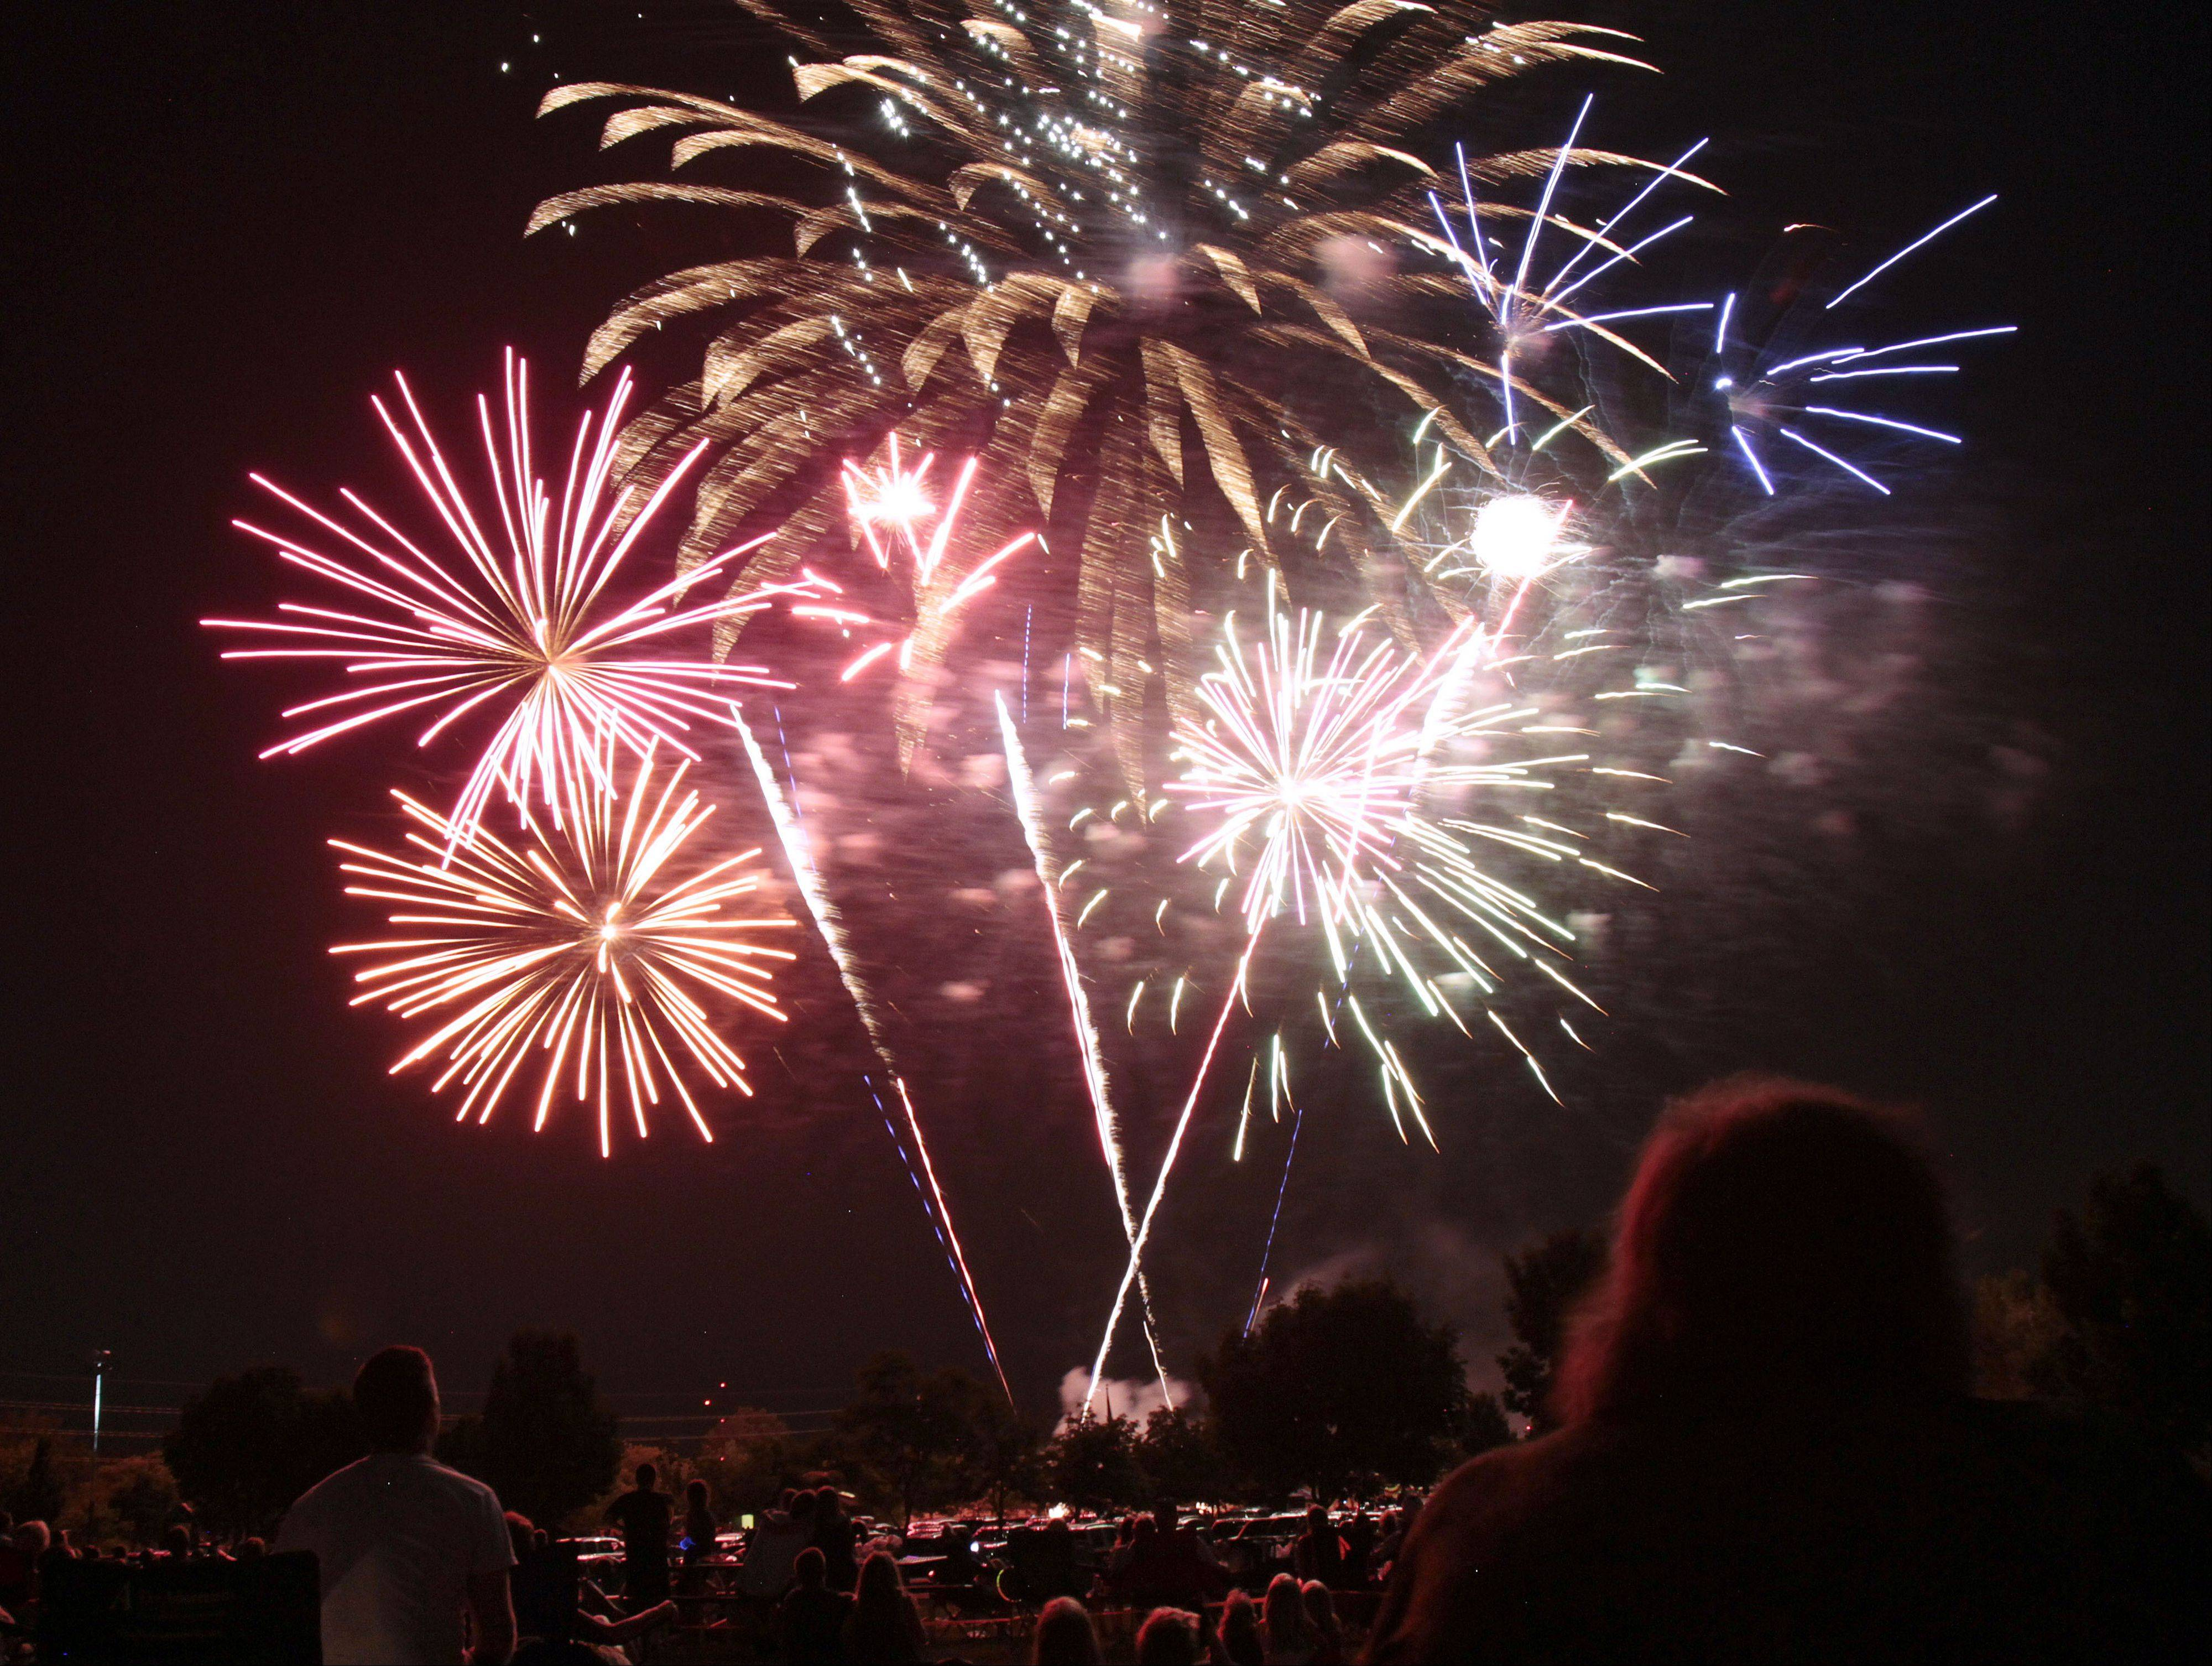 Hawthorn Woods showcases its fireworks at dusk Wednesday, July 3, at Hawthorn Woods Community Park.